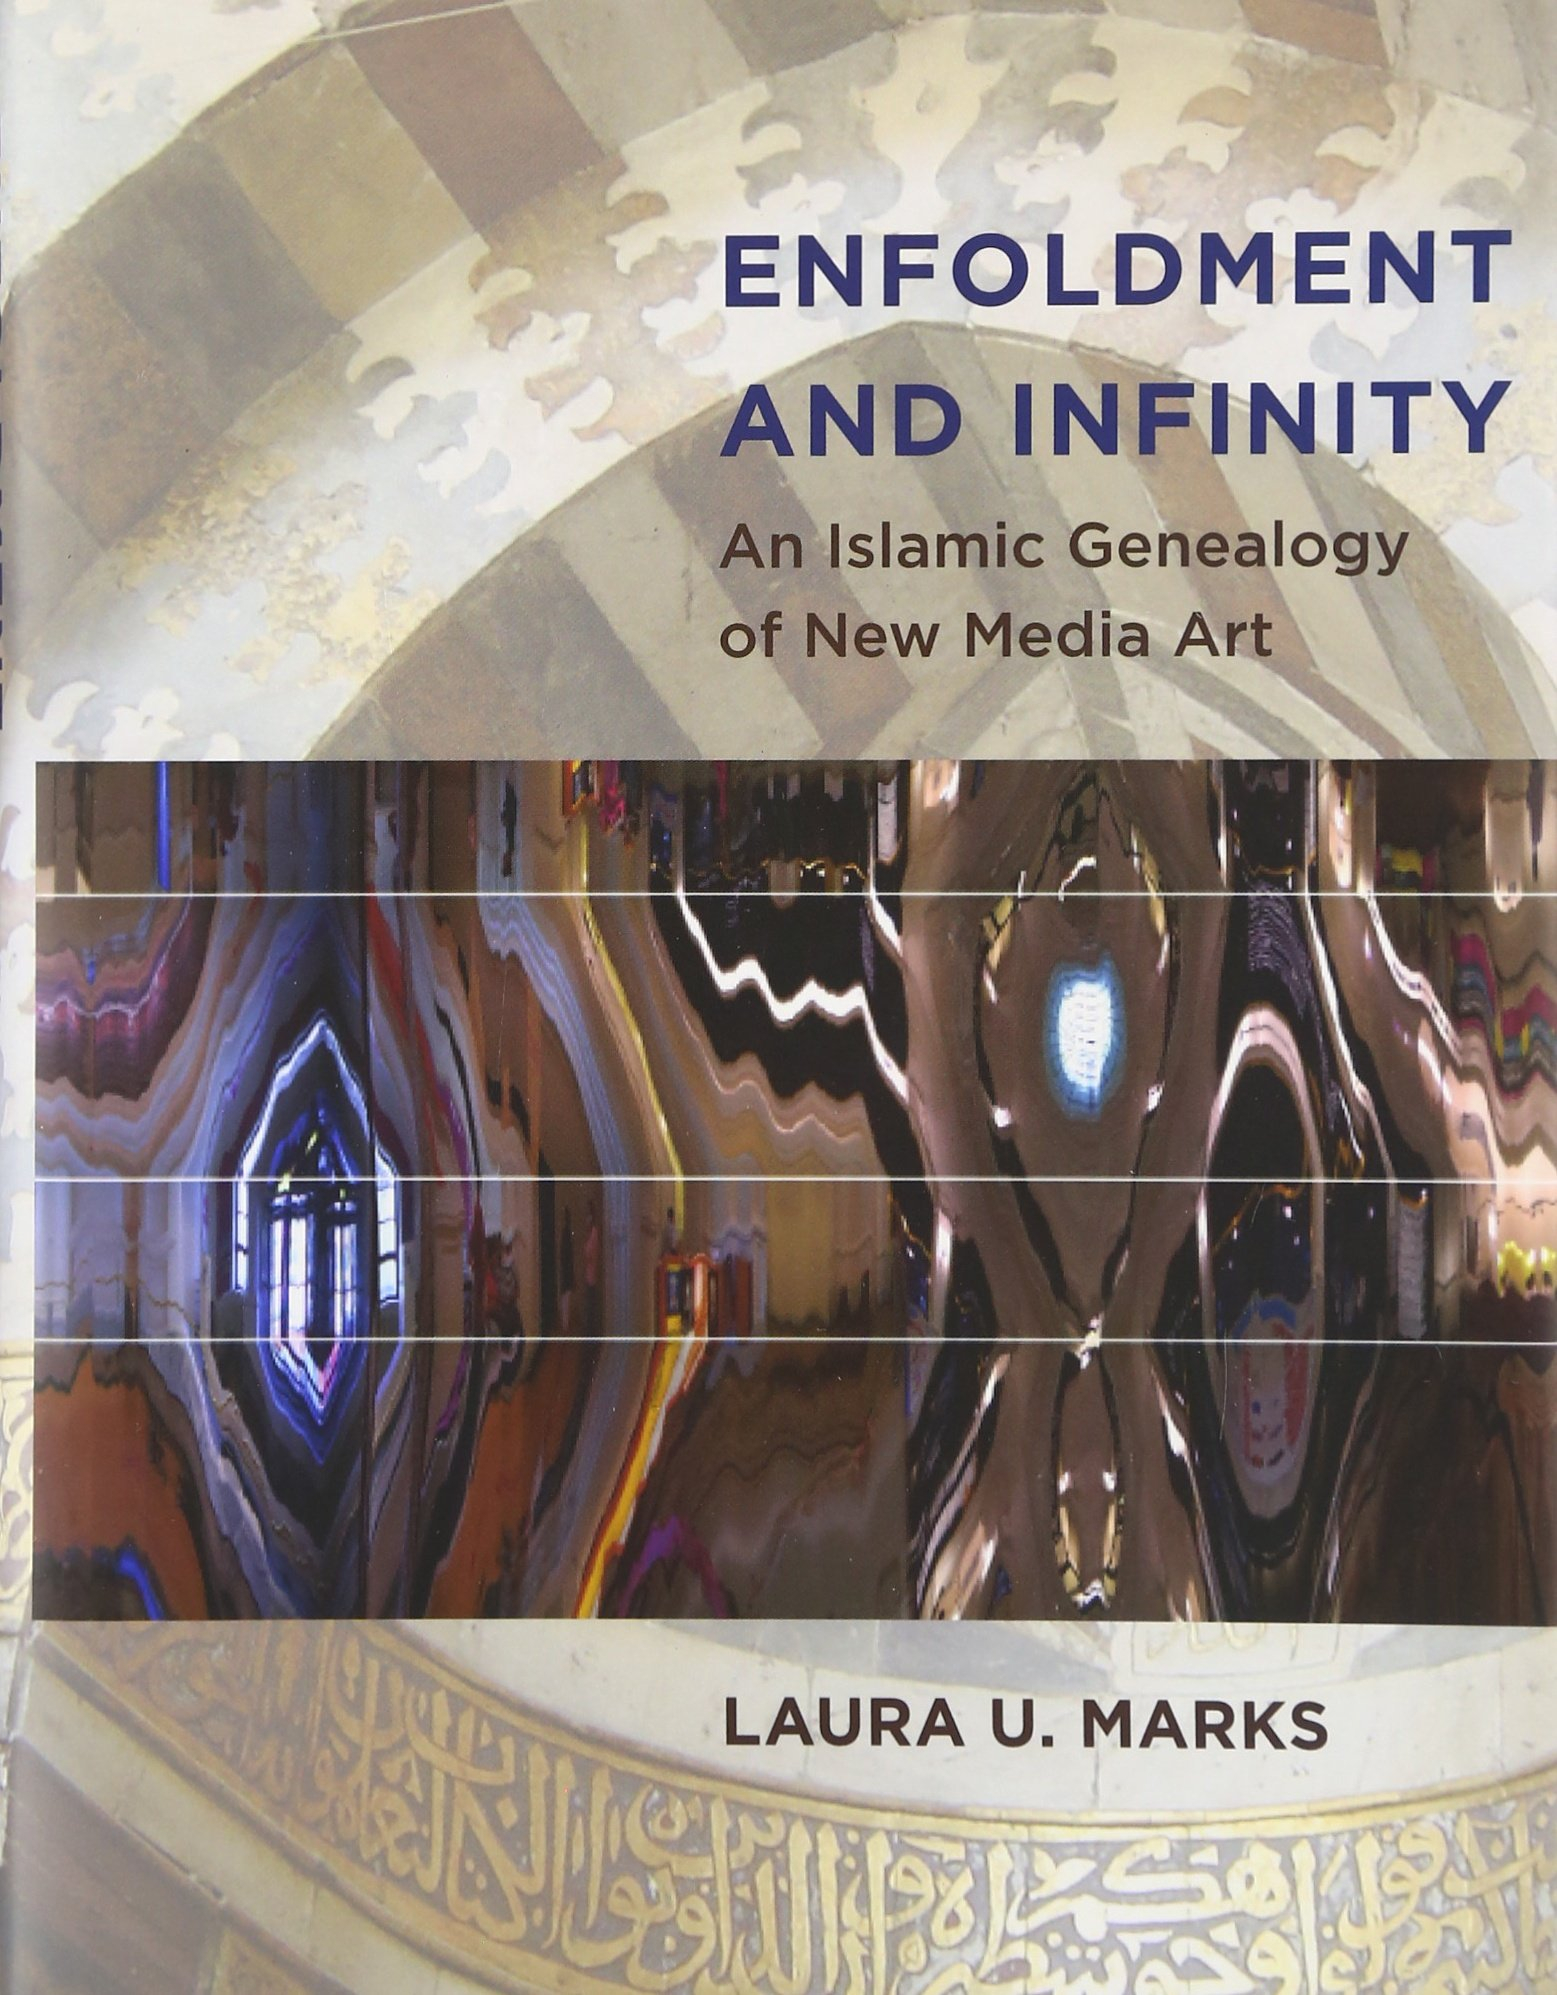 Buy Enfoldment and Infinity: An Islamic Genealogy of New Media Art